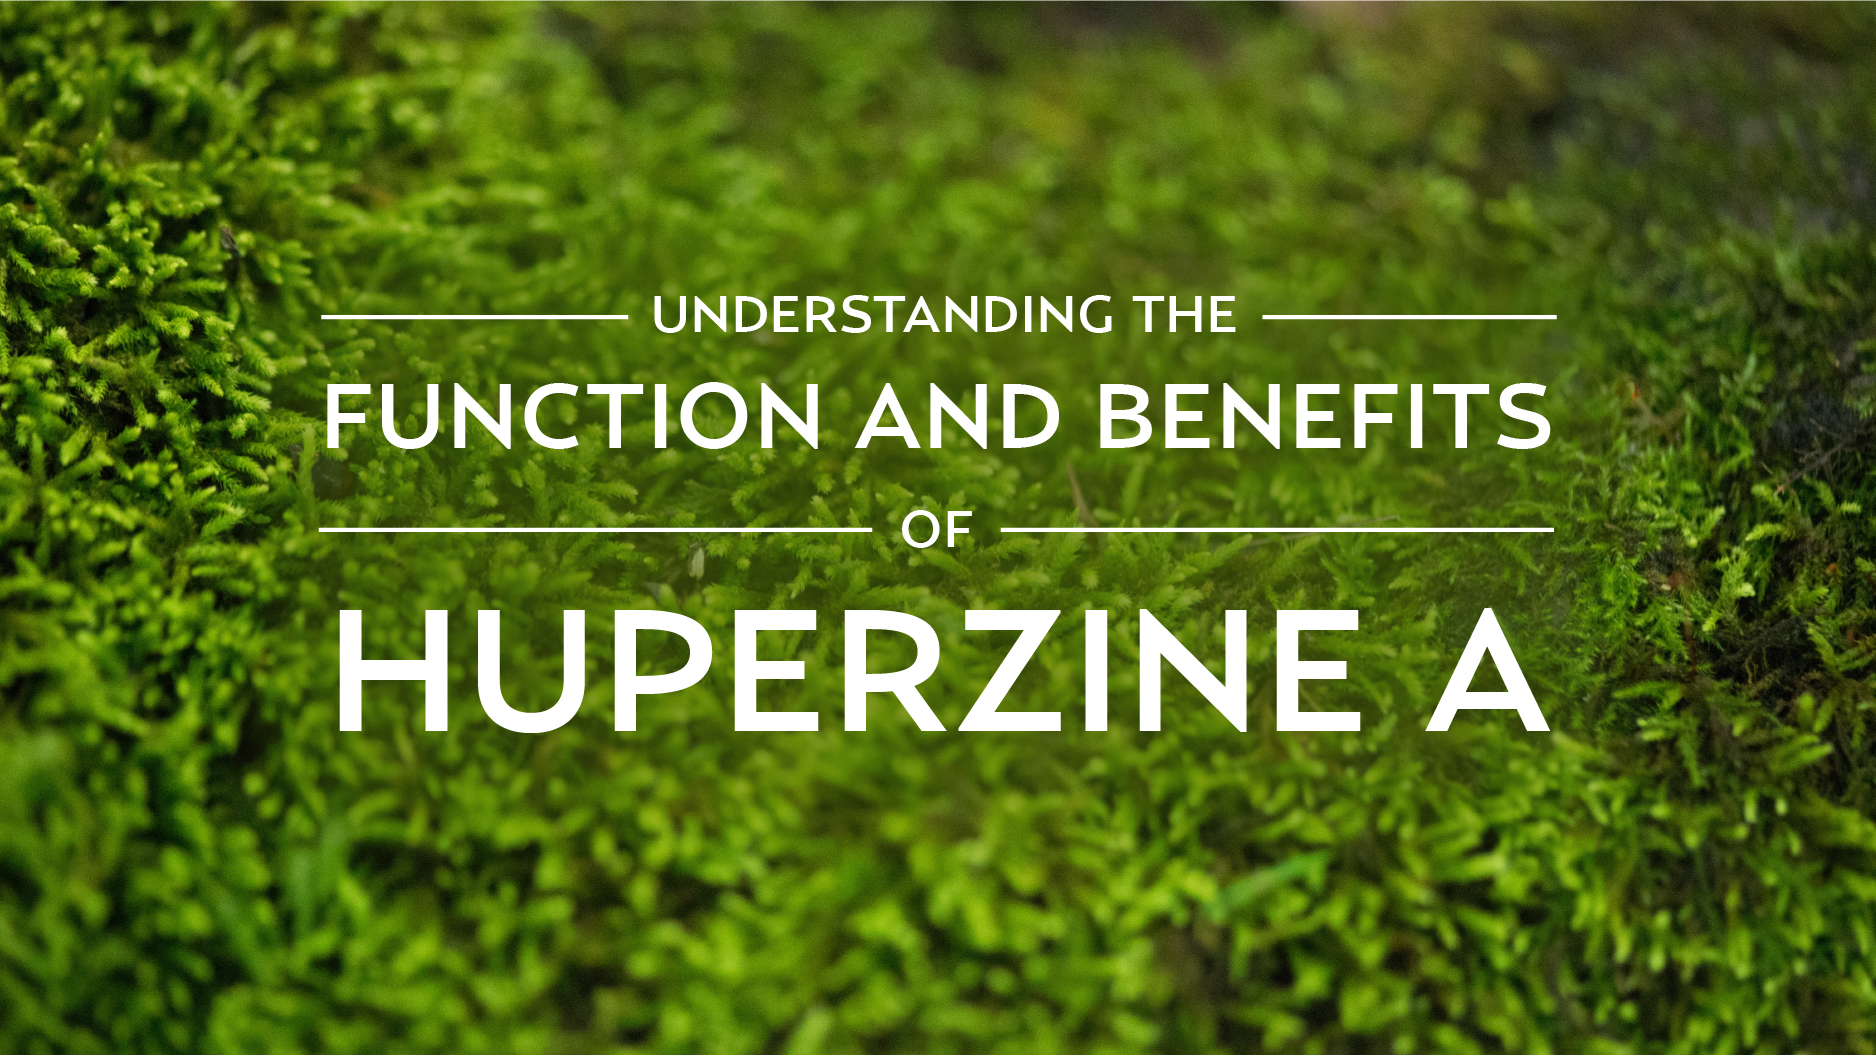 Understanding the Function and Benefits of Huperzine A